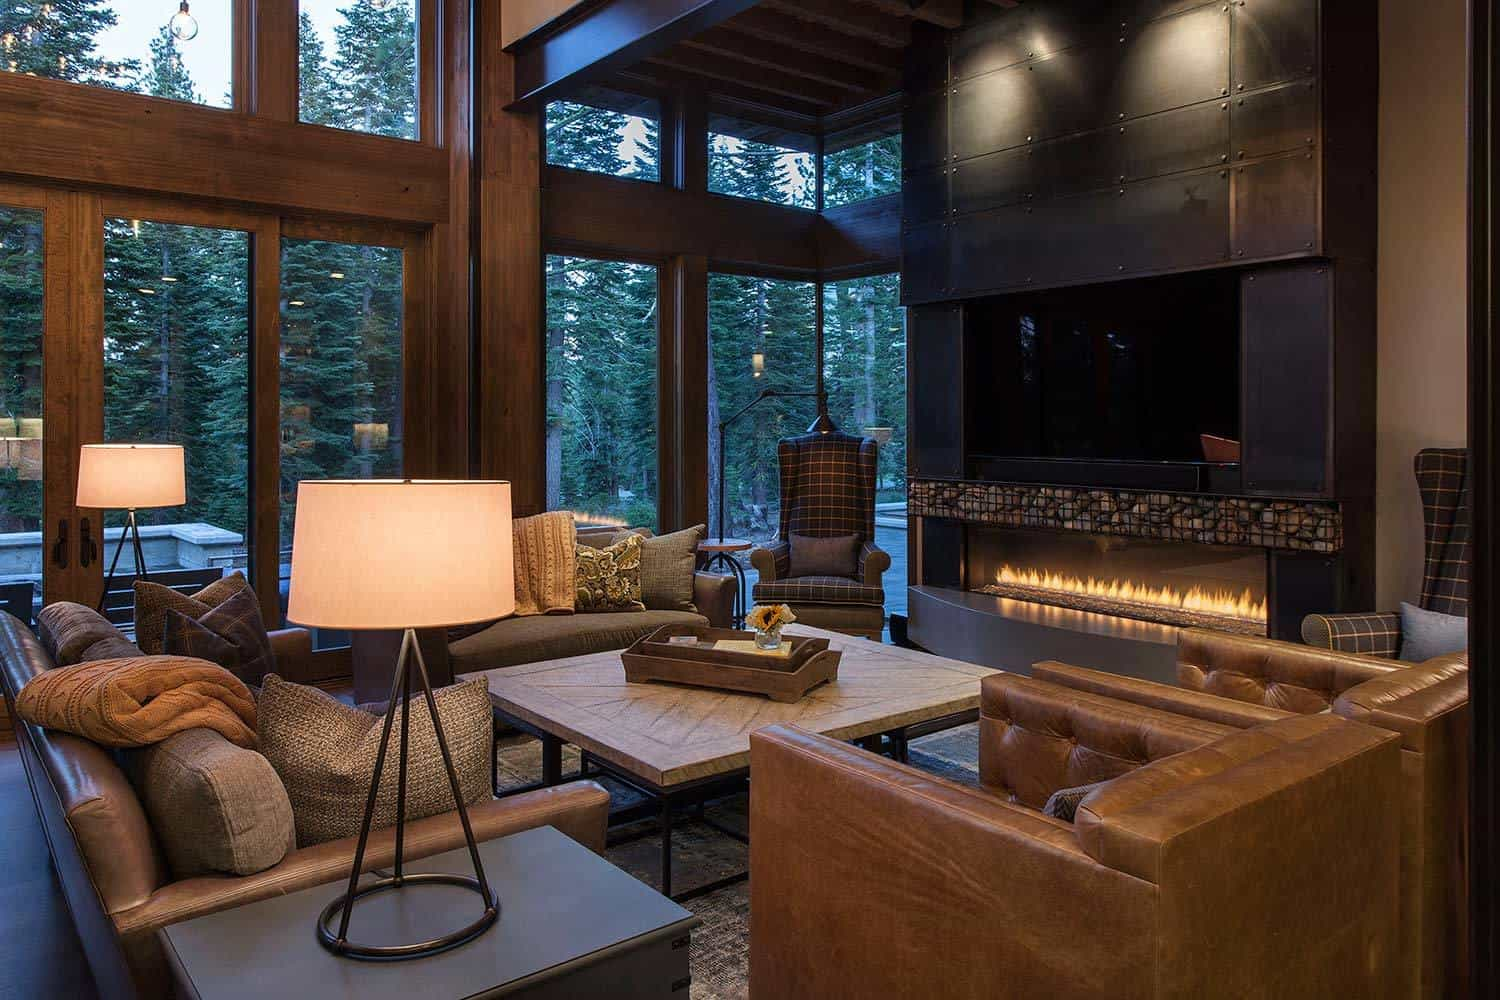 Lake tahoe getaway features contemporary barn aesthetic - Home decor interior design ...